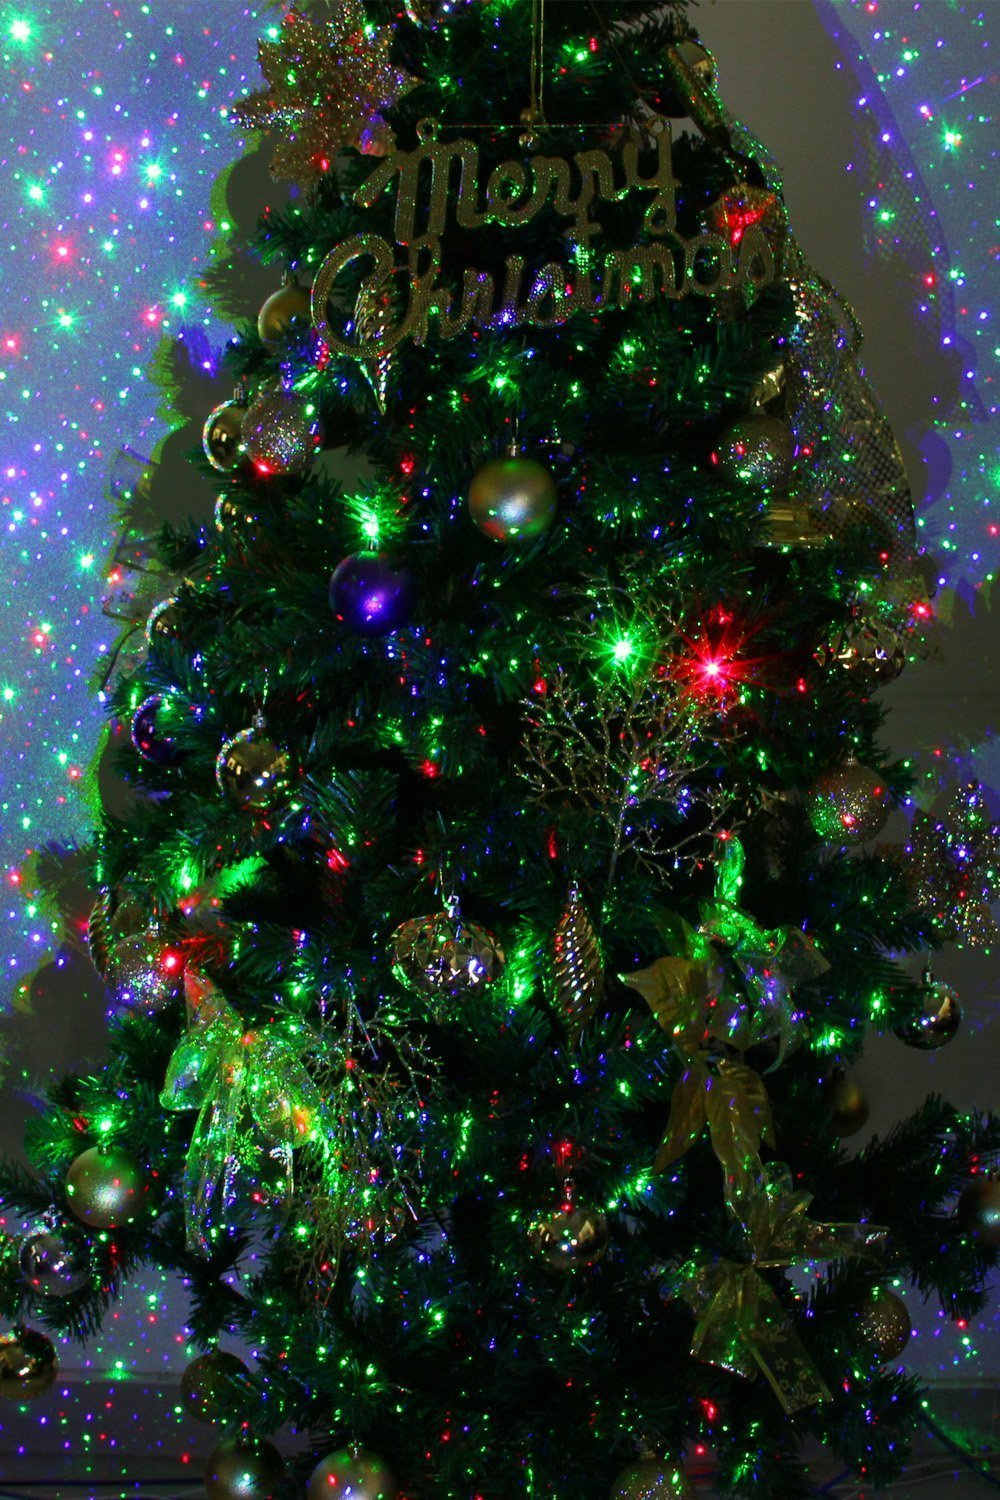 2016 New Product for Outdoor Decoration Lights/Holiday Living Outdoor Decorations/Lighted Outdoor Christmas Decorations